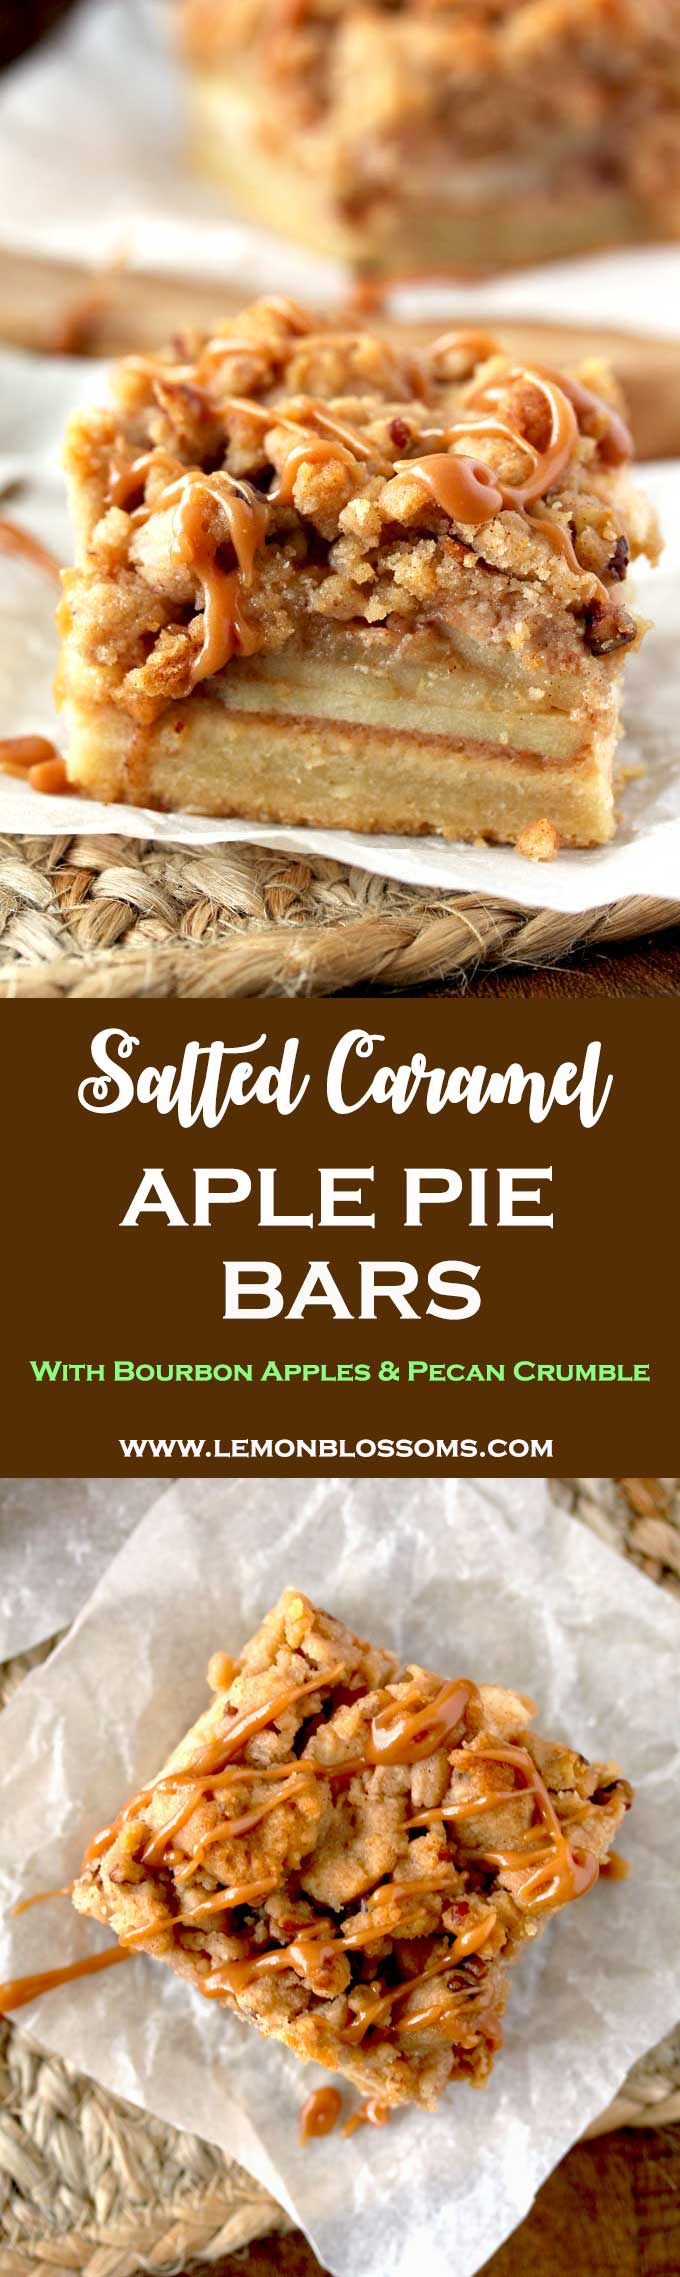 These Salted Caramel Apple Pie Bars are the perfect portable sweet bite. A perfectly flaky shortbread crust, bourbon sweet apples, pecan crumb topping, and the most addicting salted caramel drizzle make the best dessert bars! #applepie #baking #sweets #dessert